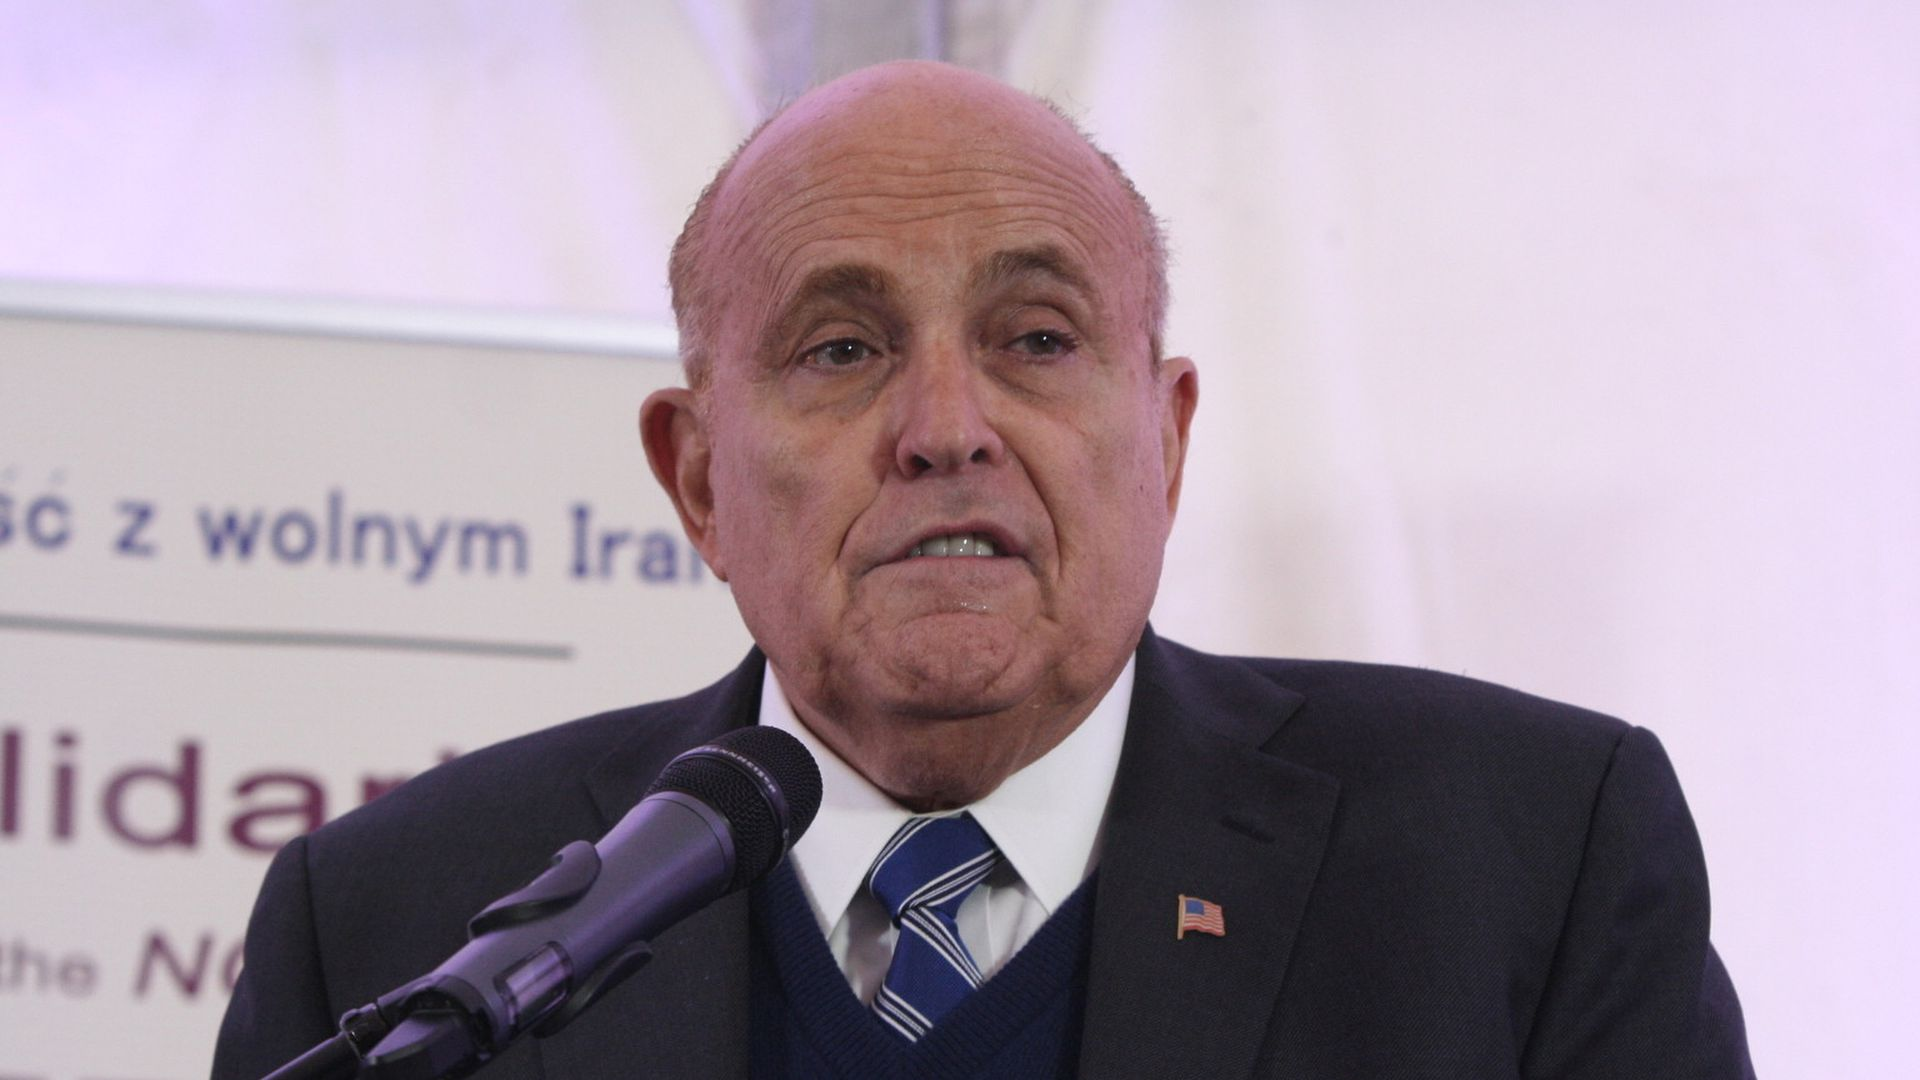 Rudy Giuliani says President Trump won't look at the issue of granting pardons until the Mueller probe concludes.